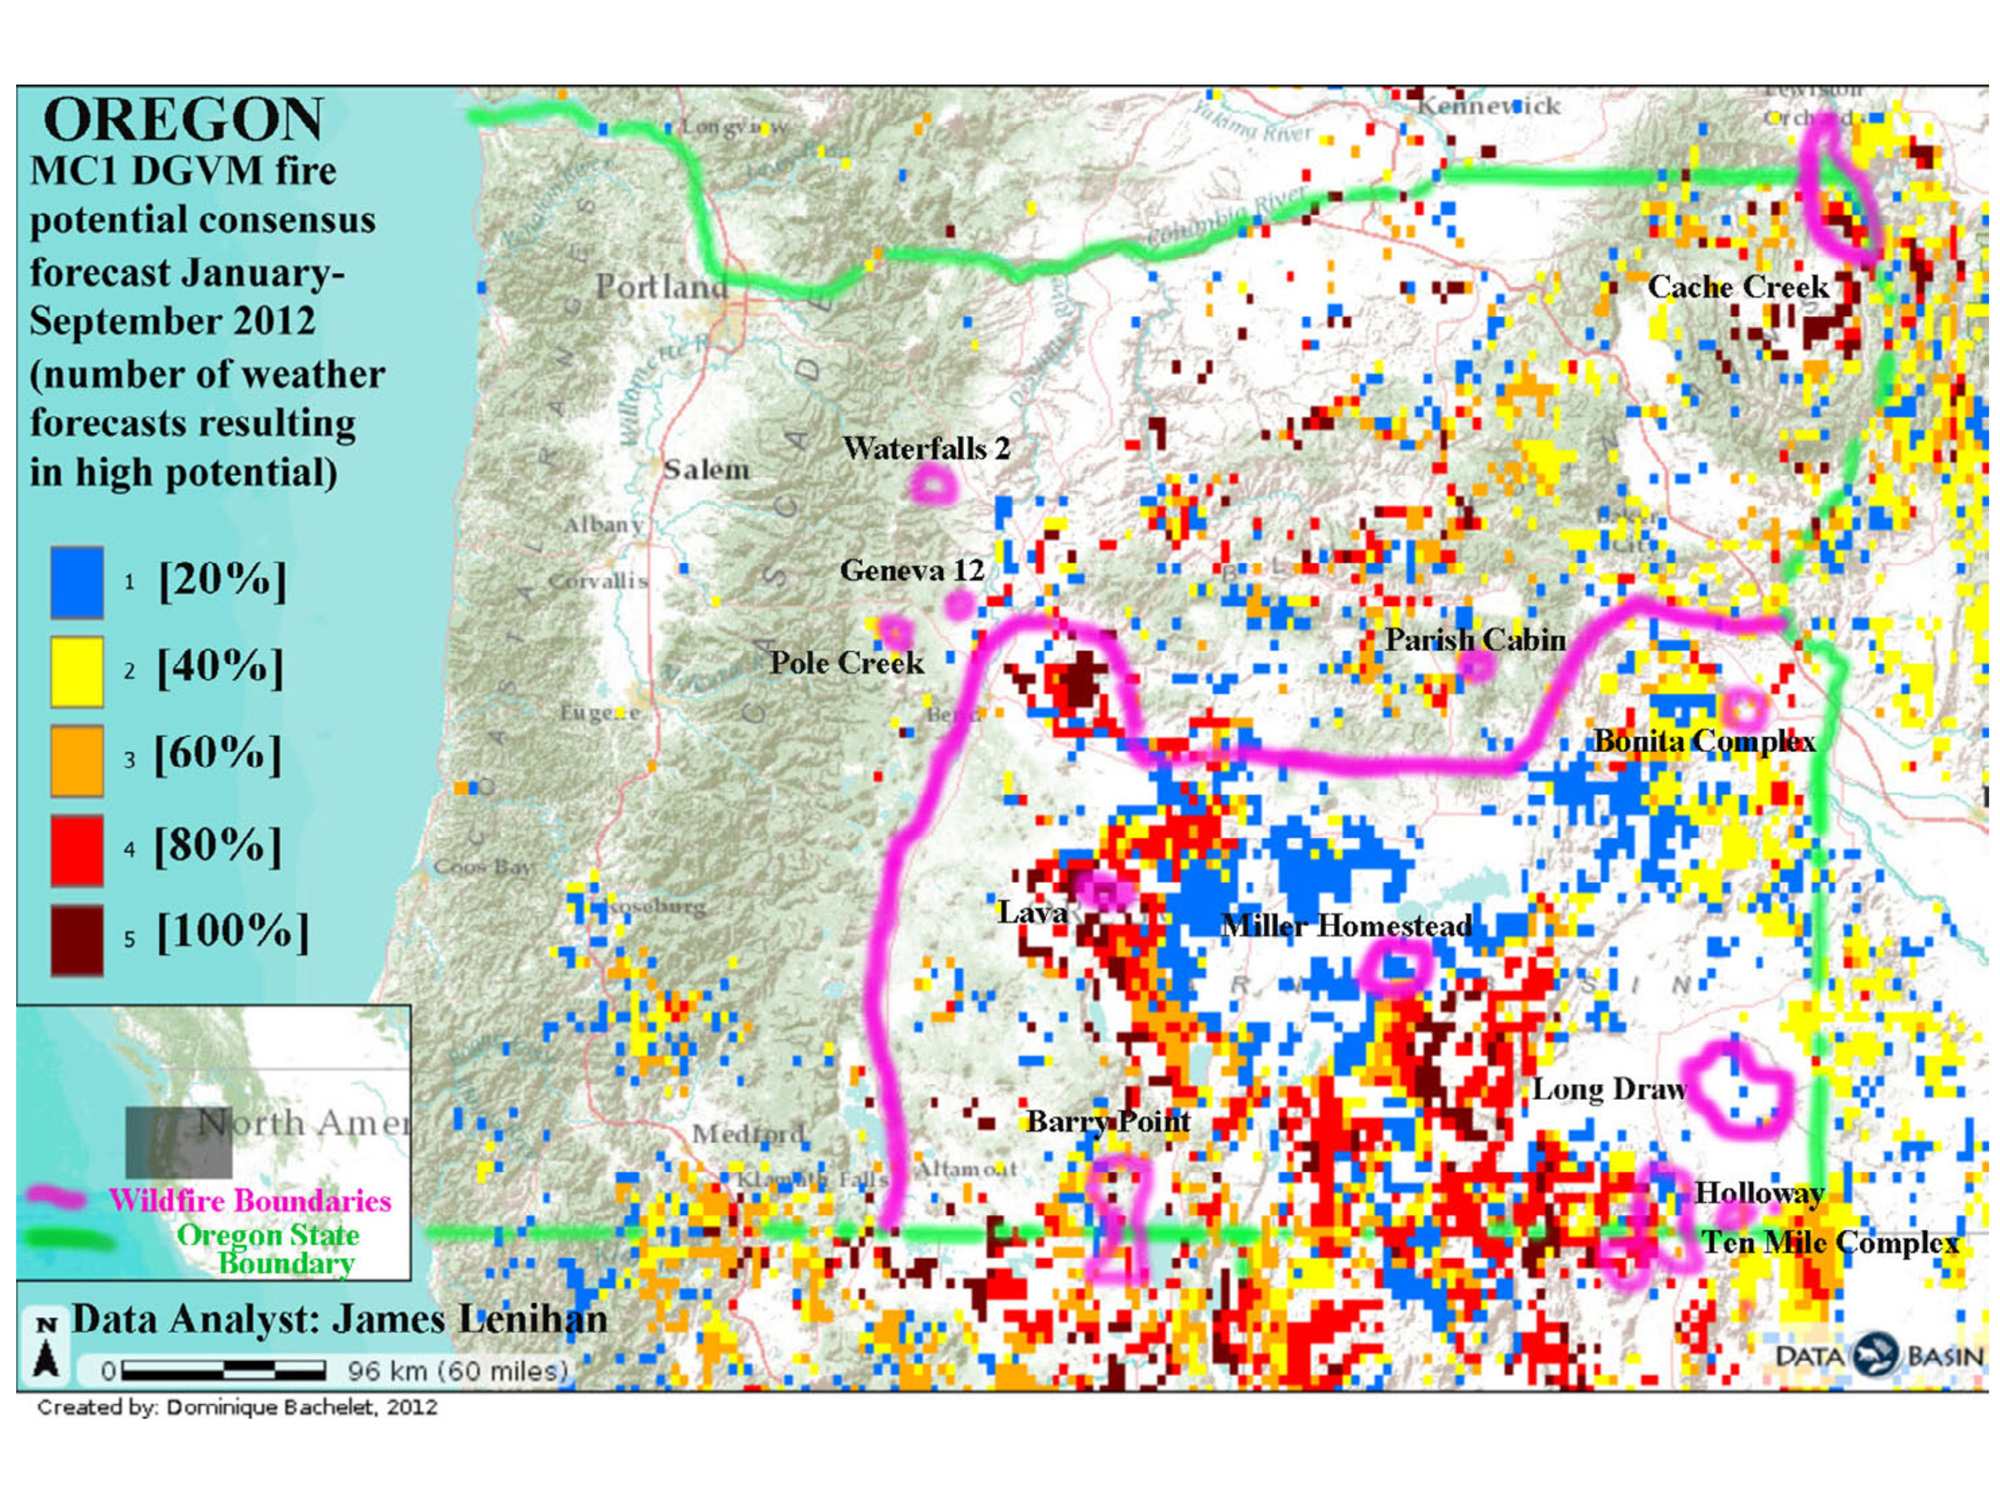 Nw Maps Co Zybach Presentation Oregon Wildfires August 27 2014